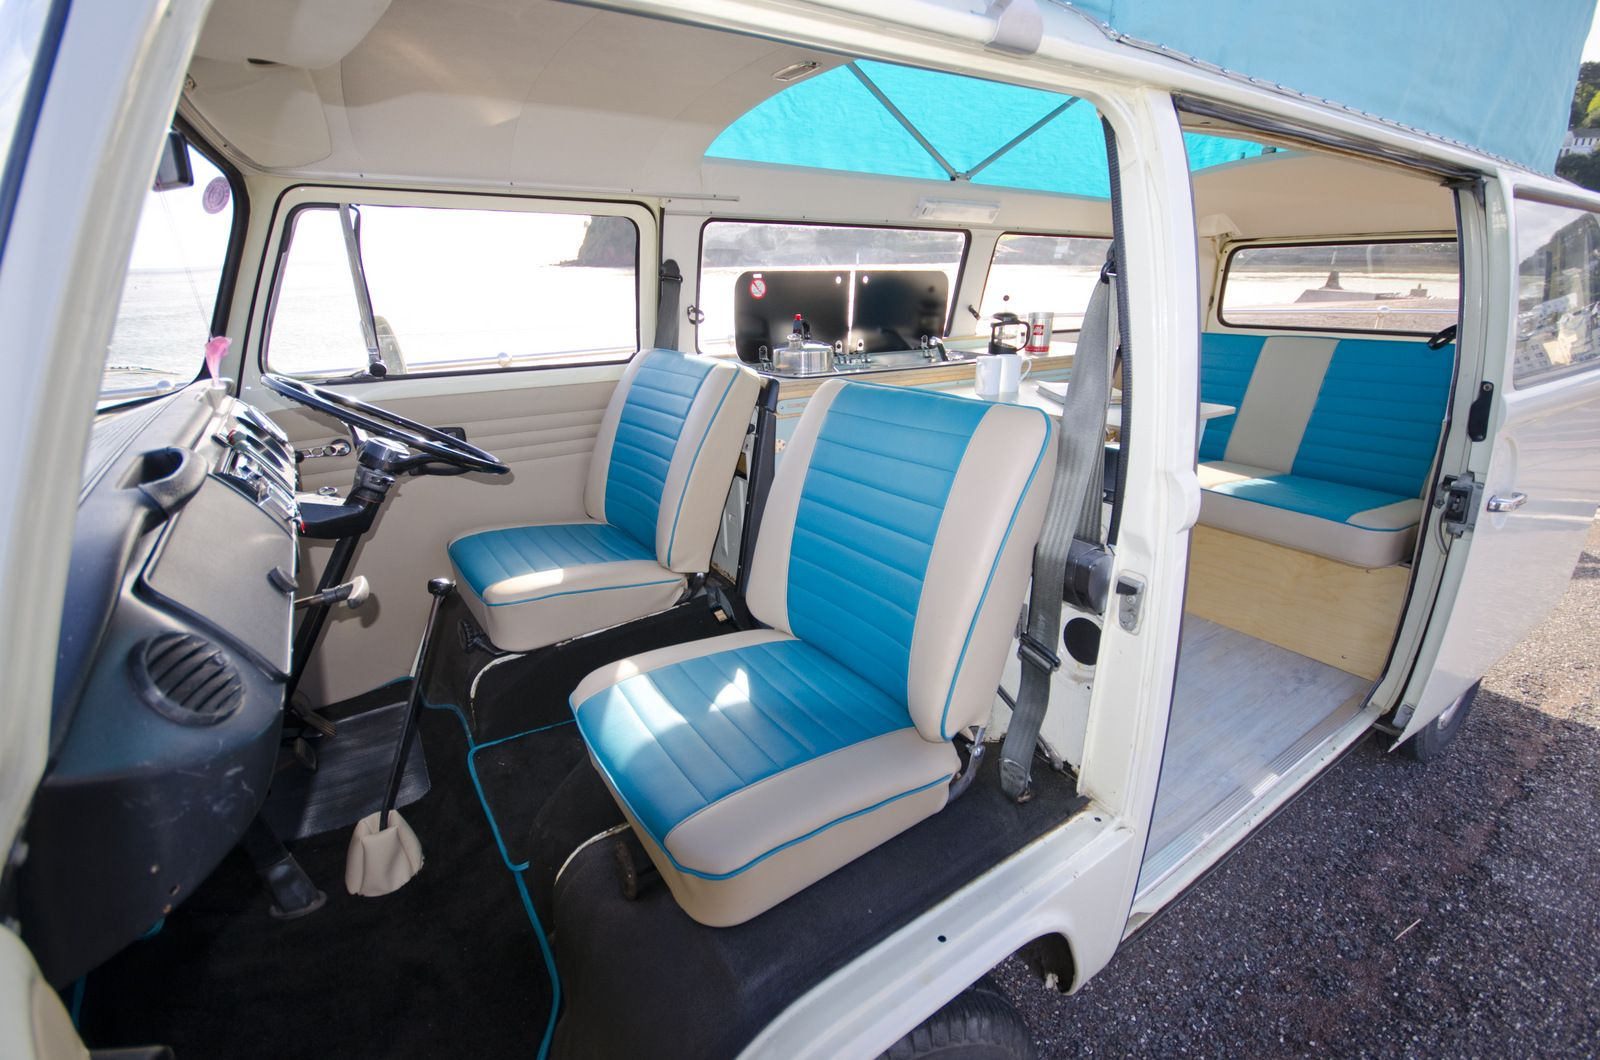 Stupendous Vw Camper 1973 Late Bay Window Kombi Interior Custom Van Caraccident5 Cool Chair Designs And Ideas Caraccident5Info